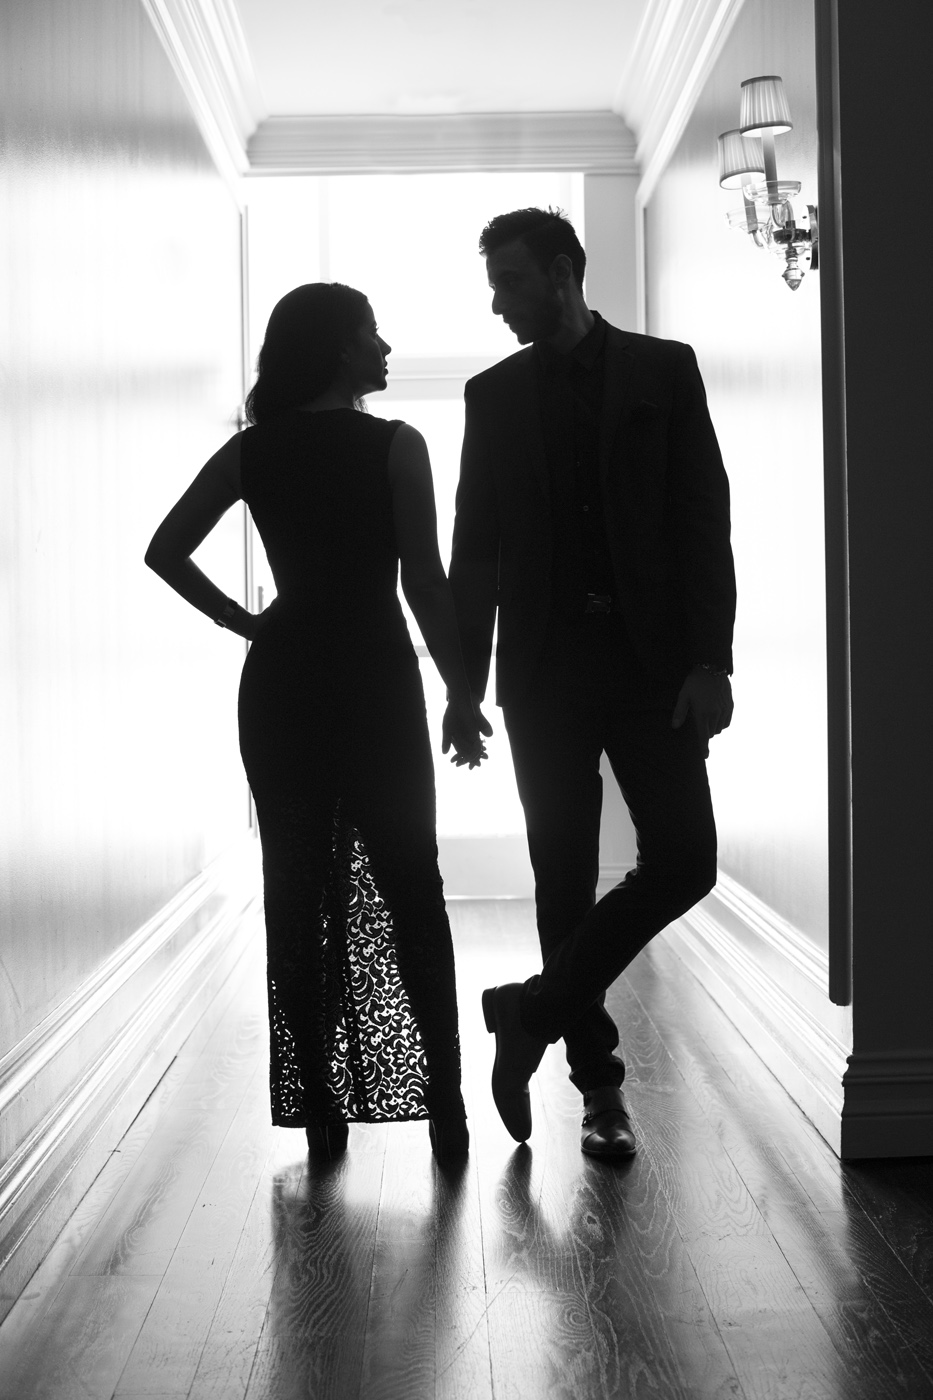 043_DukePhotography_DukeImages_Engagement_Indoor.jpg